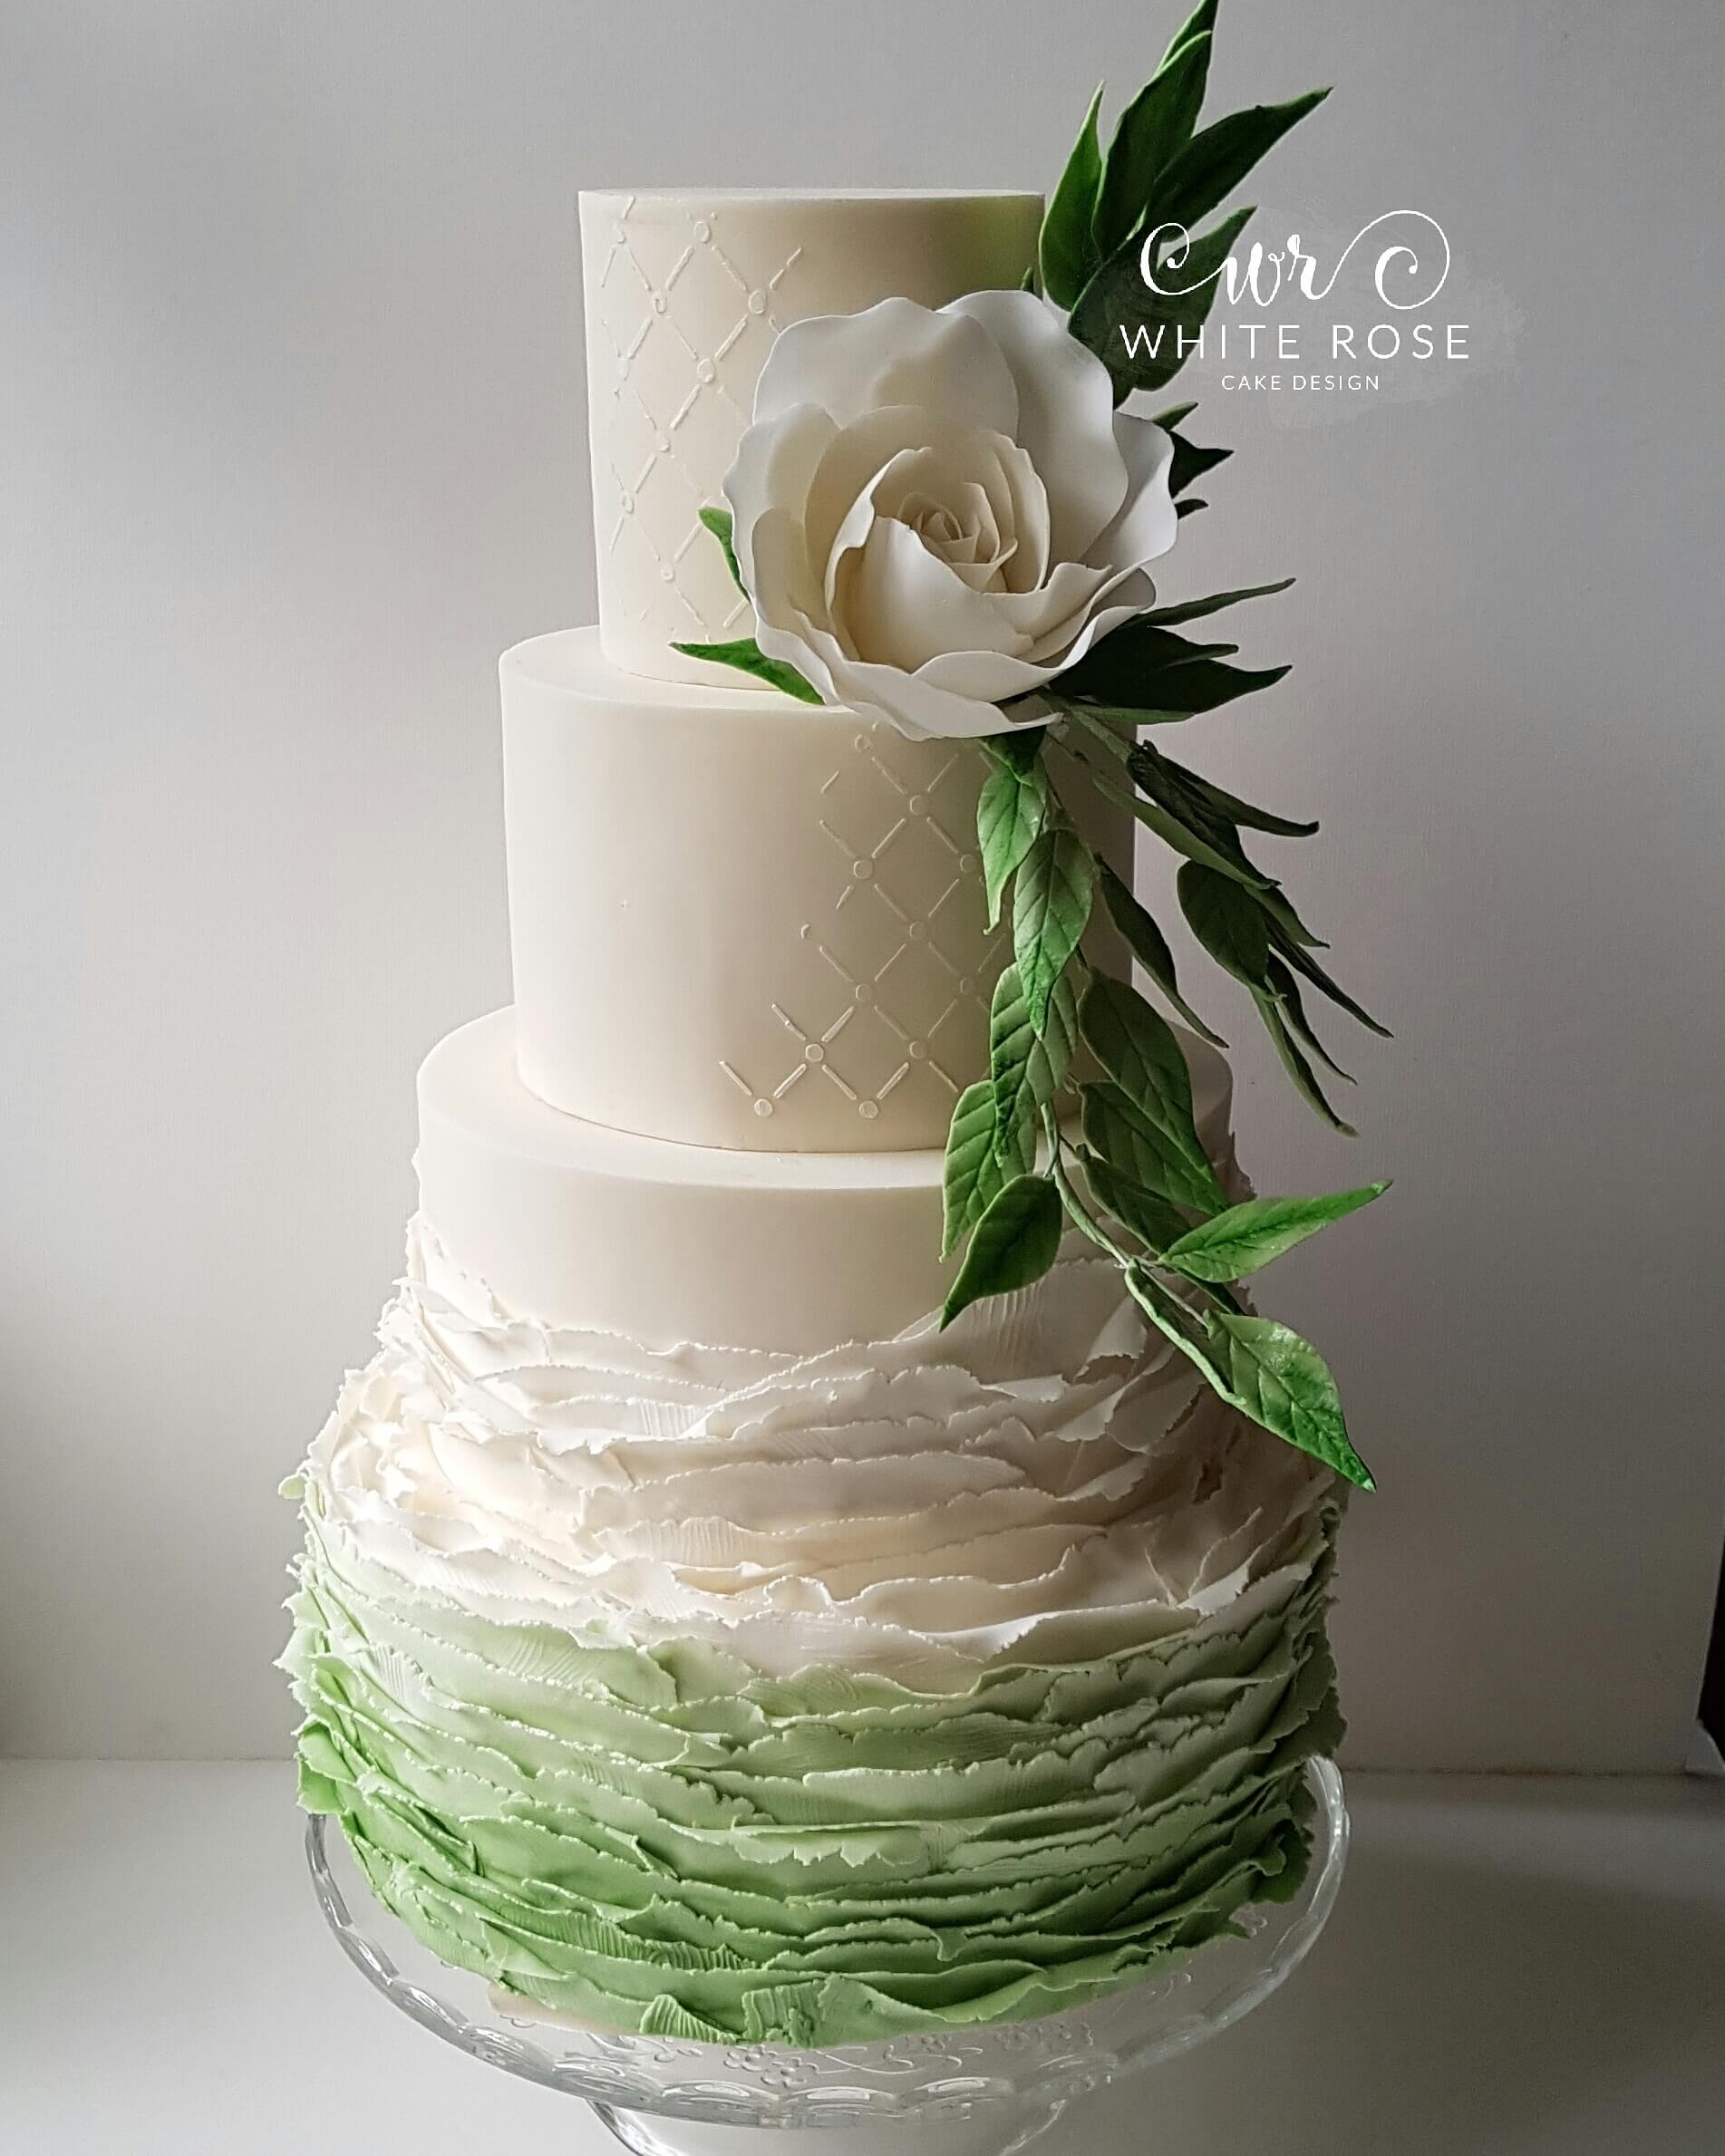 Pantone Inspired Greenery Wedding Cake by White Rose Cake Design, Wedding Cakes in West Yorkshire